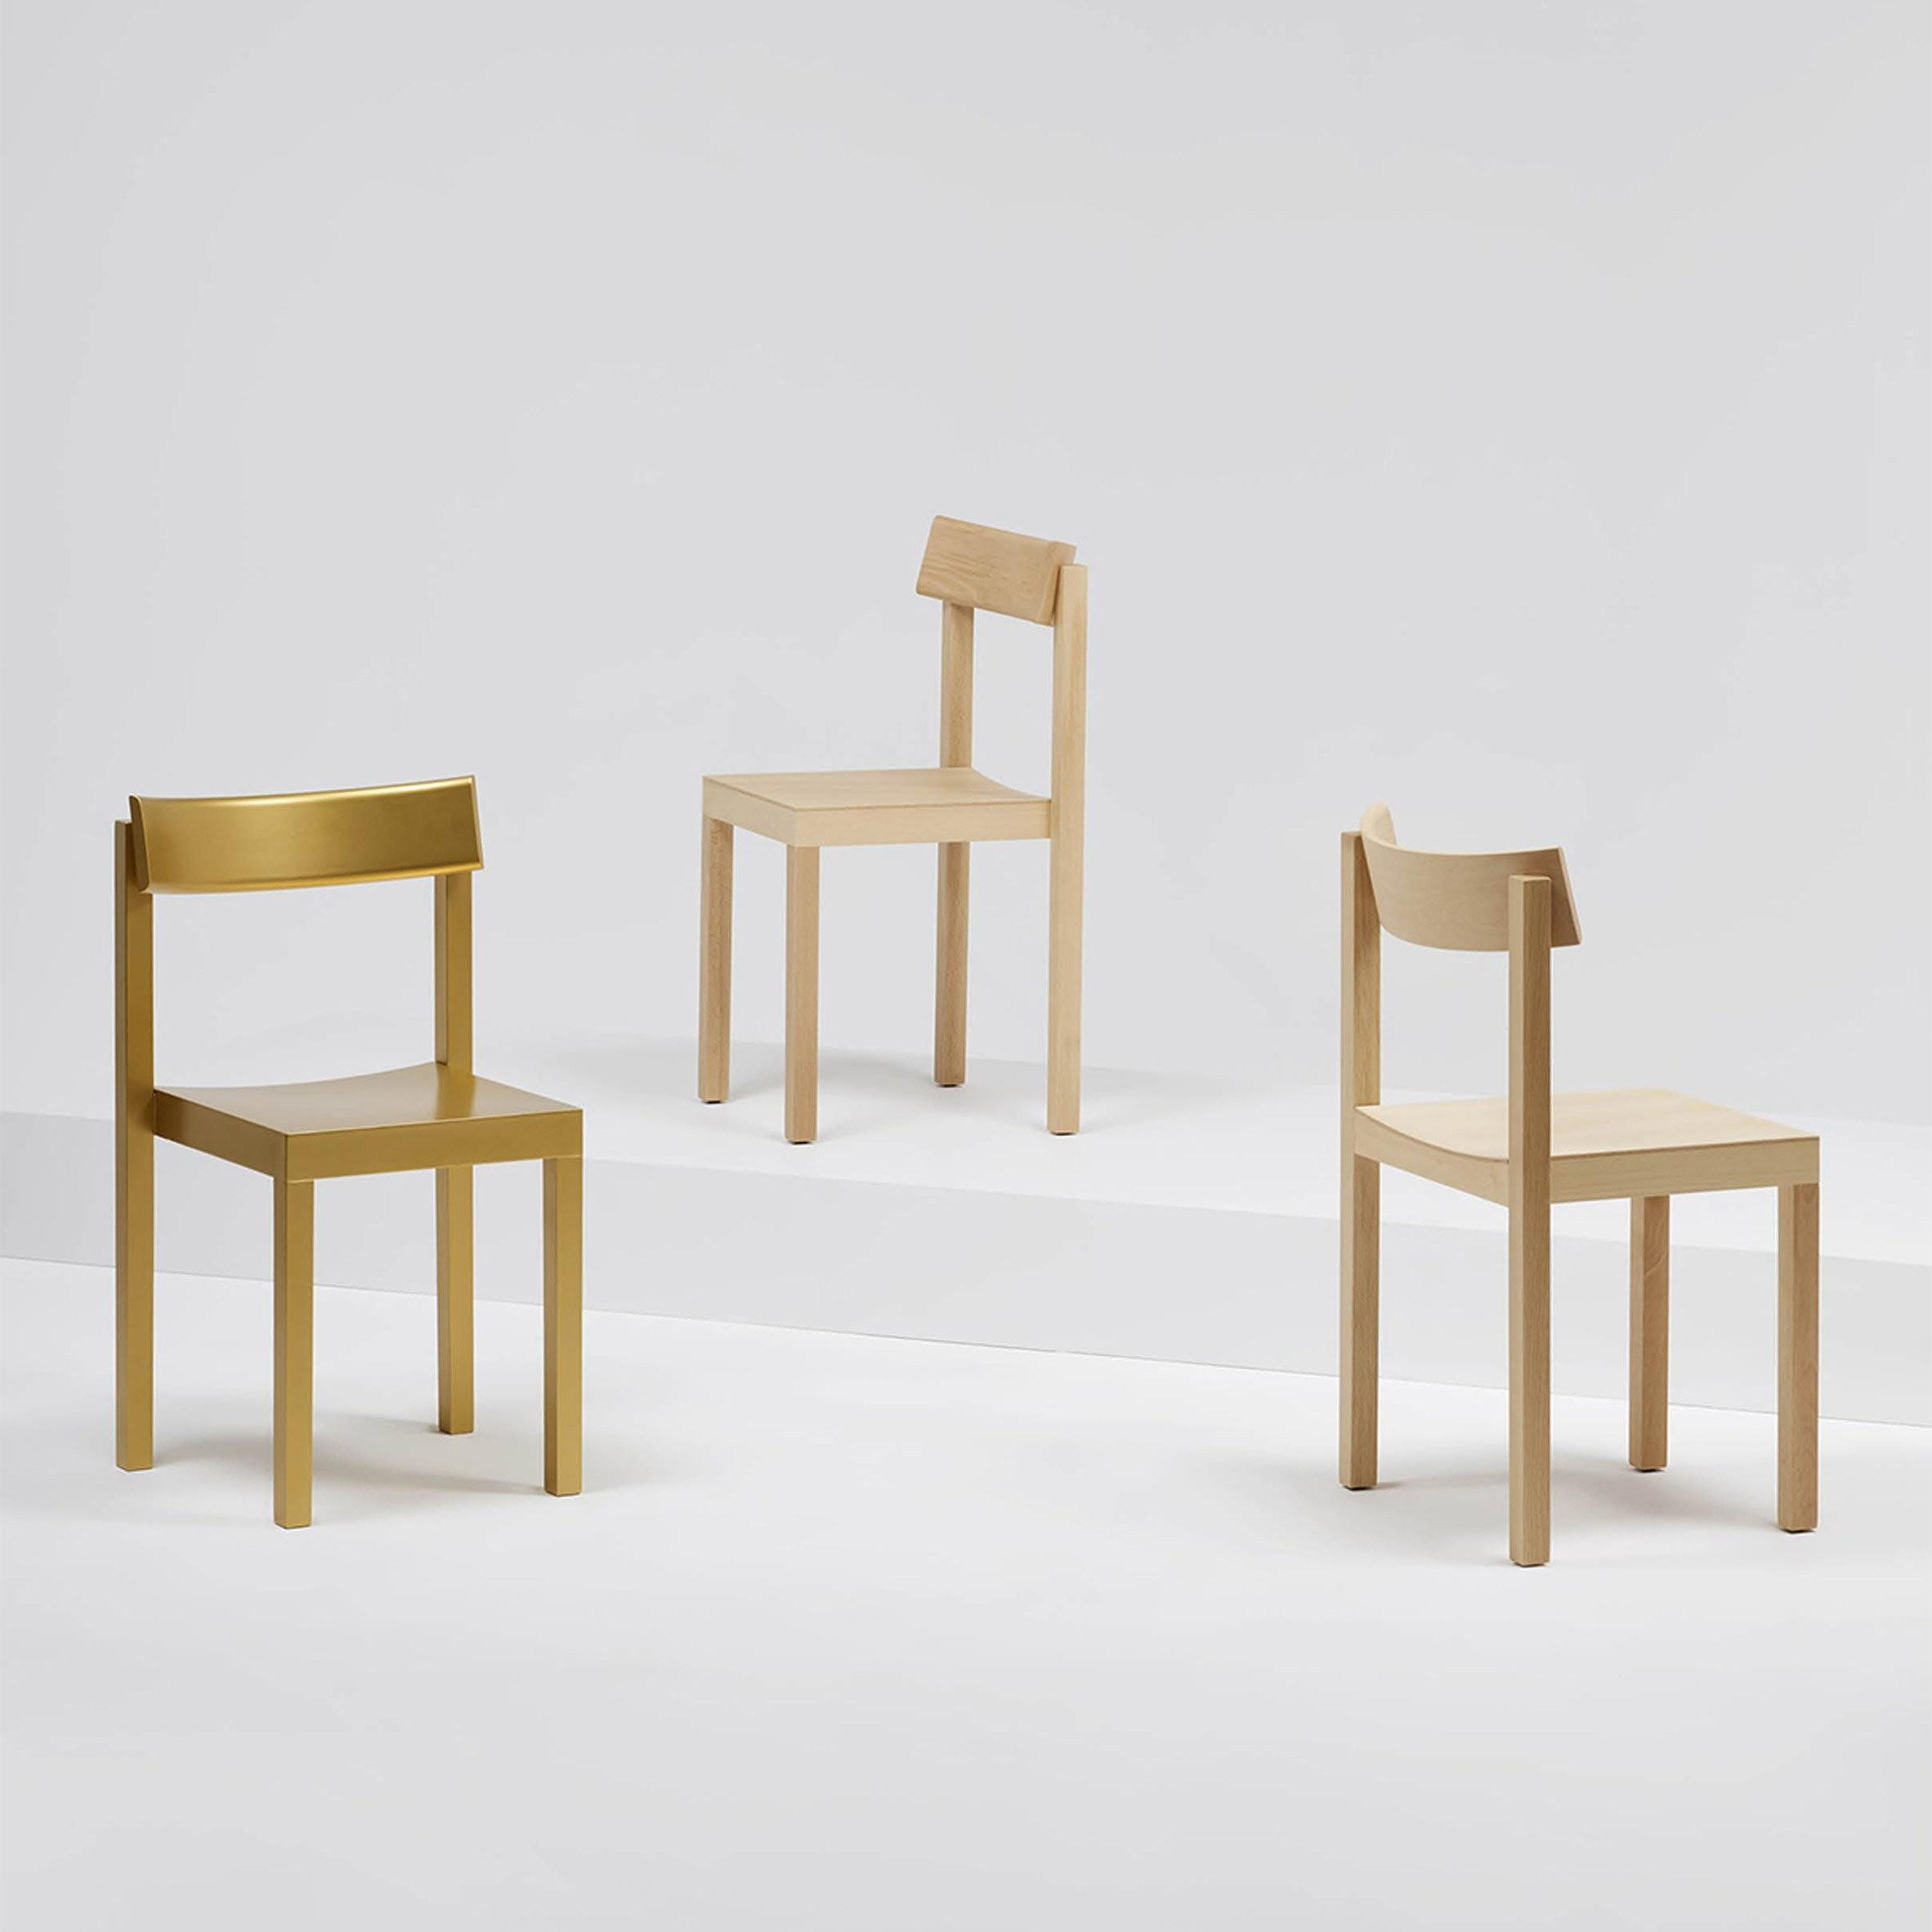 Konstantin Grcic Designs Strictly Vertical Primo Chair